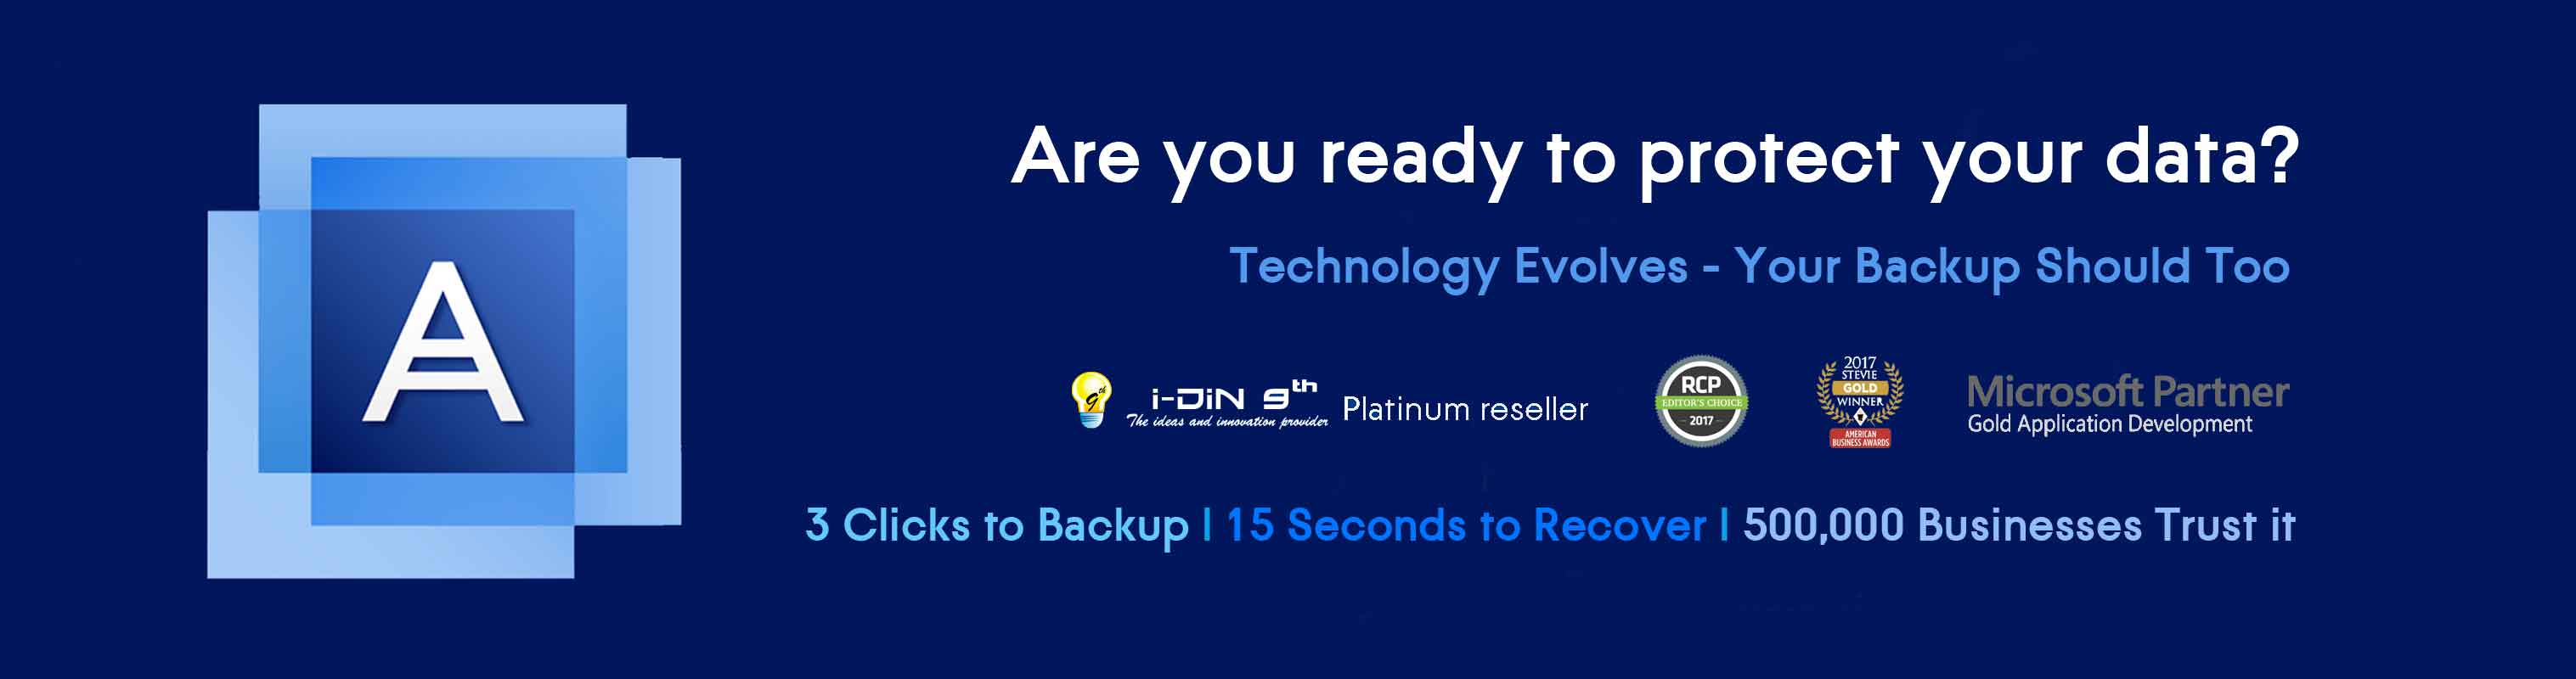 Acronis Windows Backup